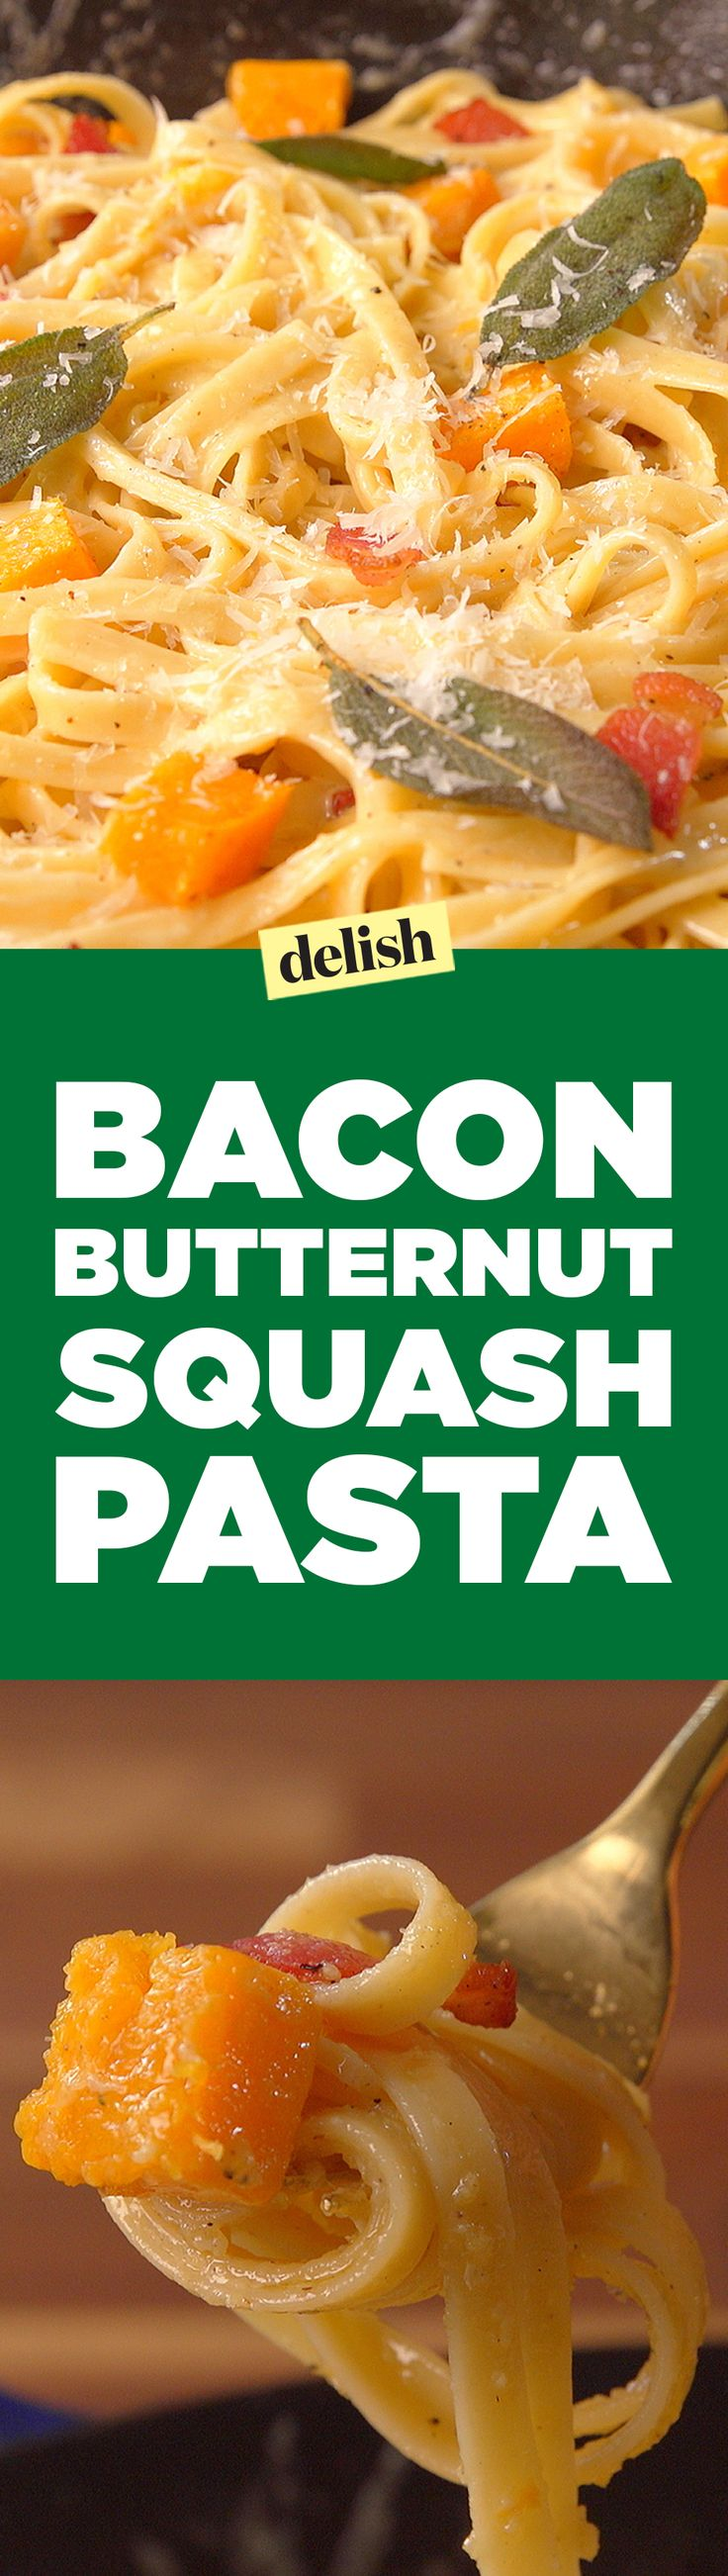 Bacon butternut squash pasta is the ultimate fall dinner. Get the recipe on Delish.com.